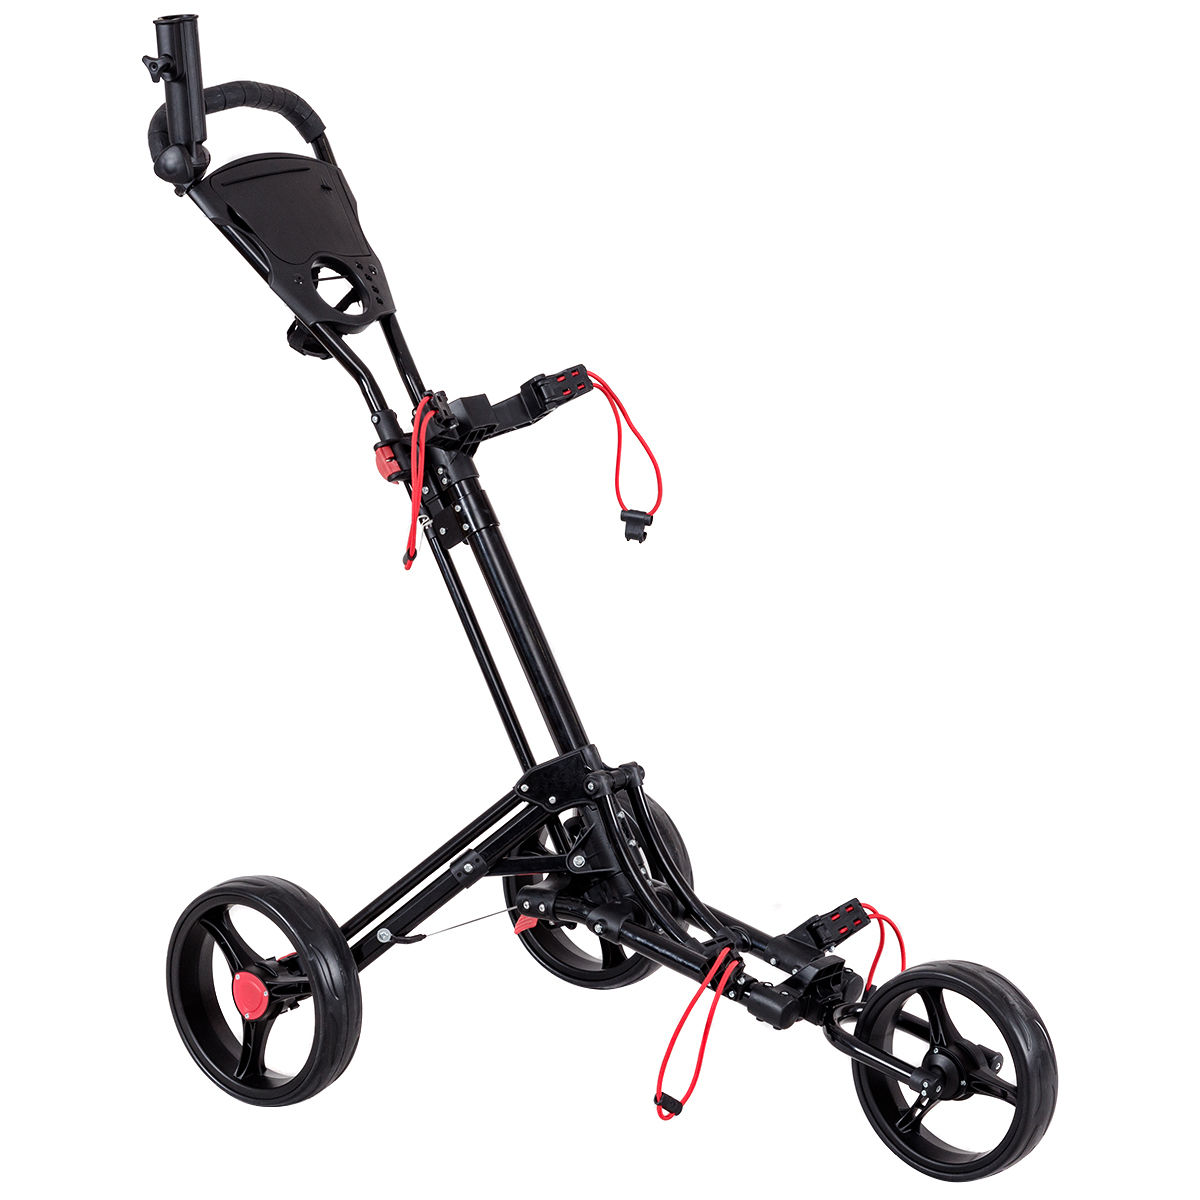 Costway Foldable 3 Wheel Steel Golf Pull Push Cart Trolley Club w/ Umbrella Holder